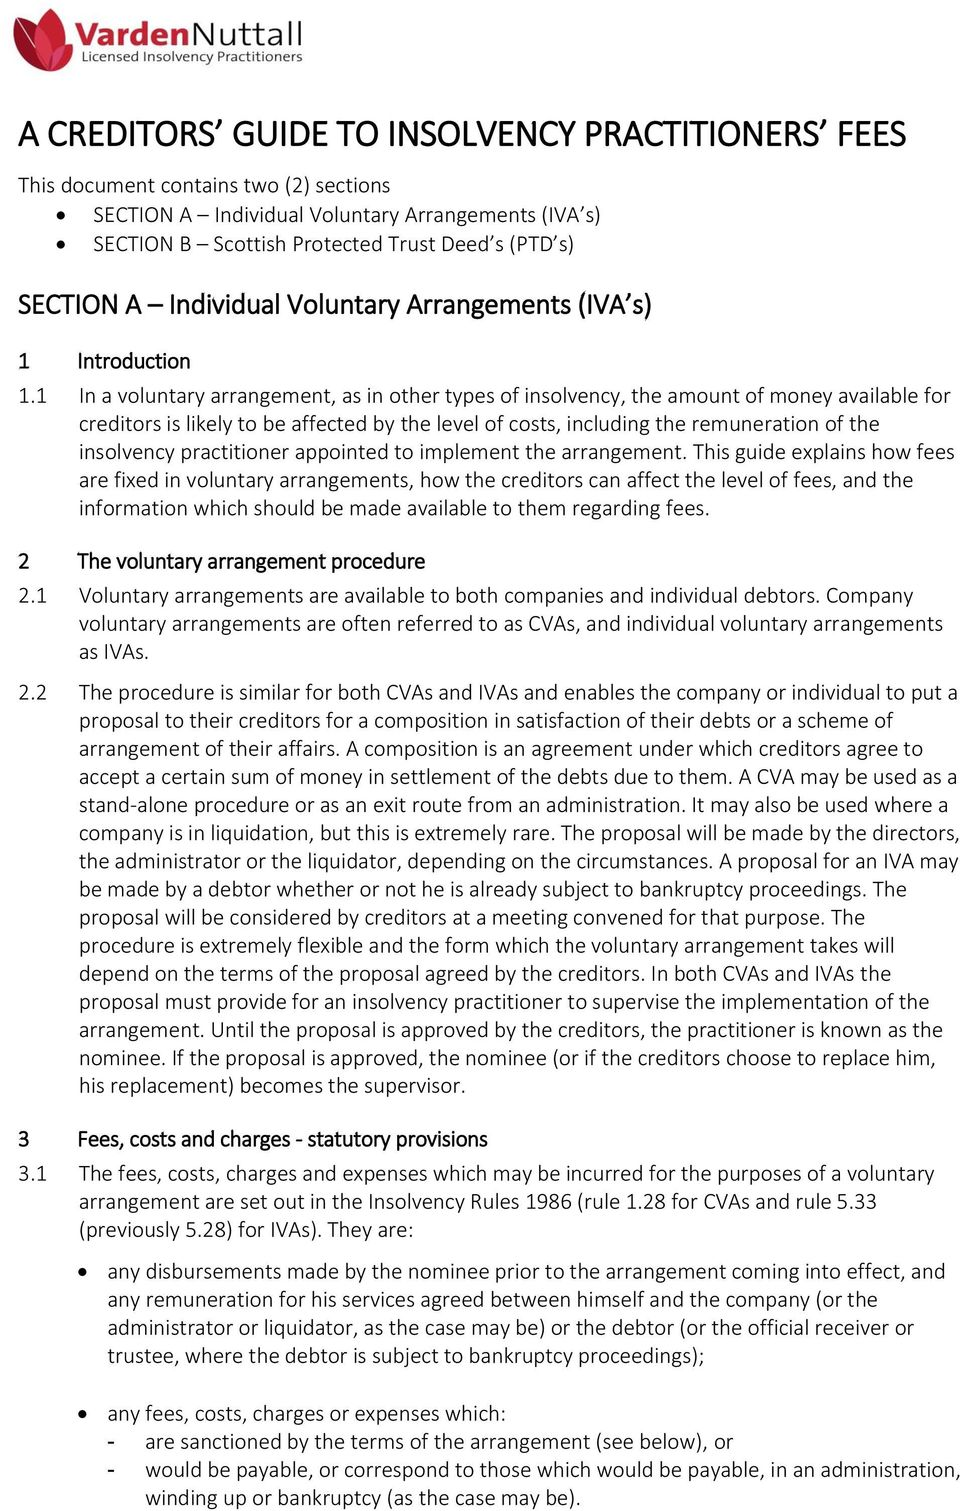 1 In a voluntary arrangement, as in other types of insolvency, the amount of money available for creditors is likely to be affected by the level of costs, including the remuneration of the insolvency